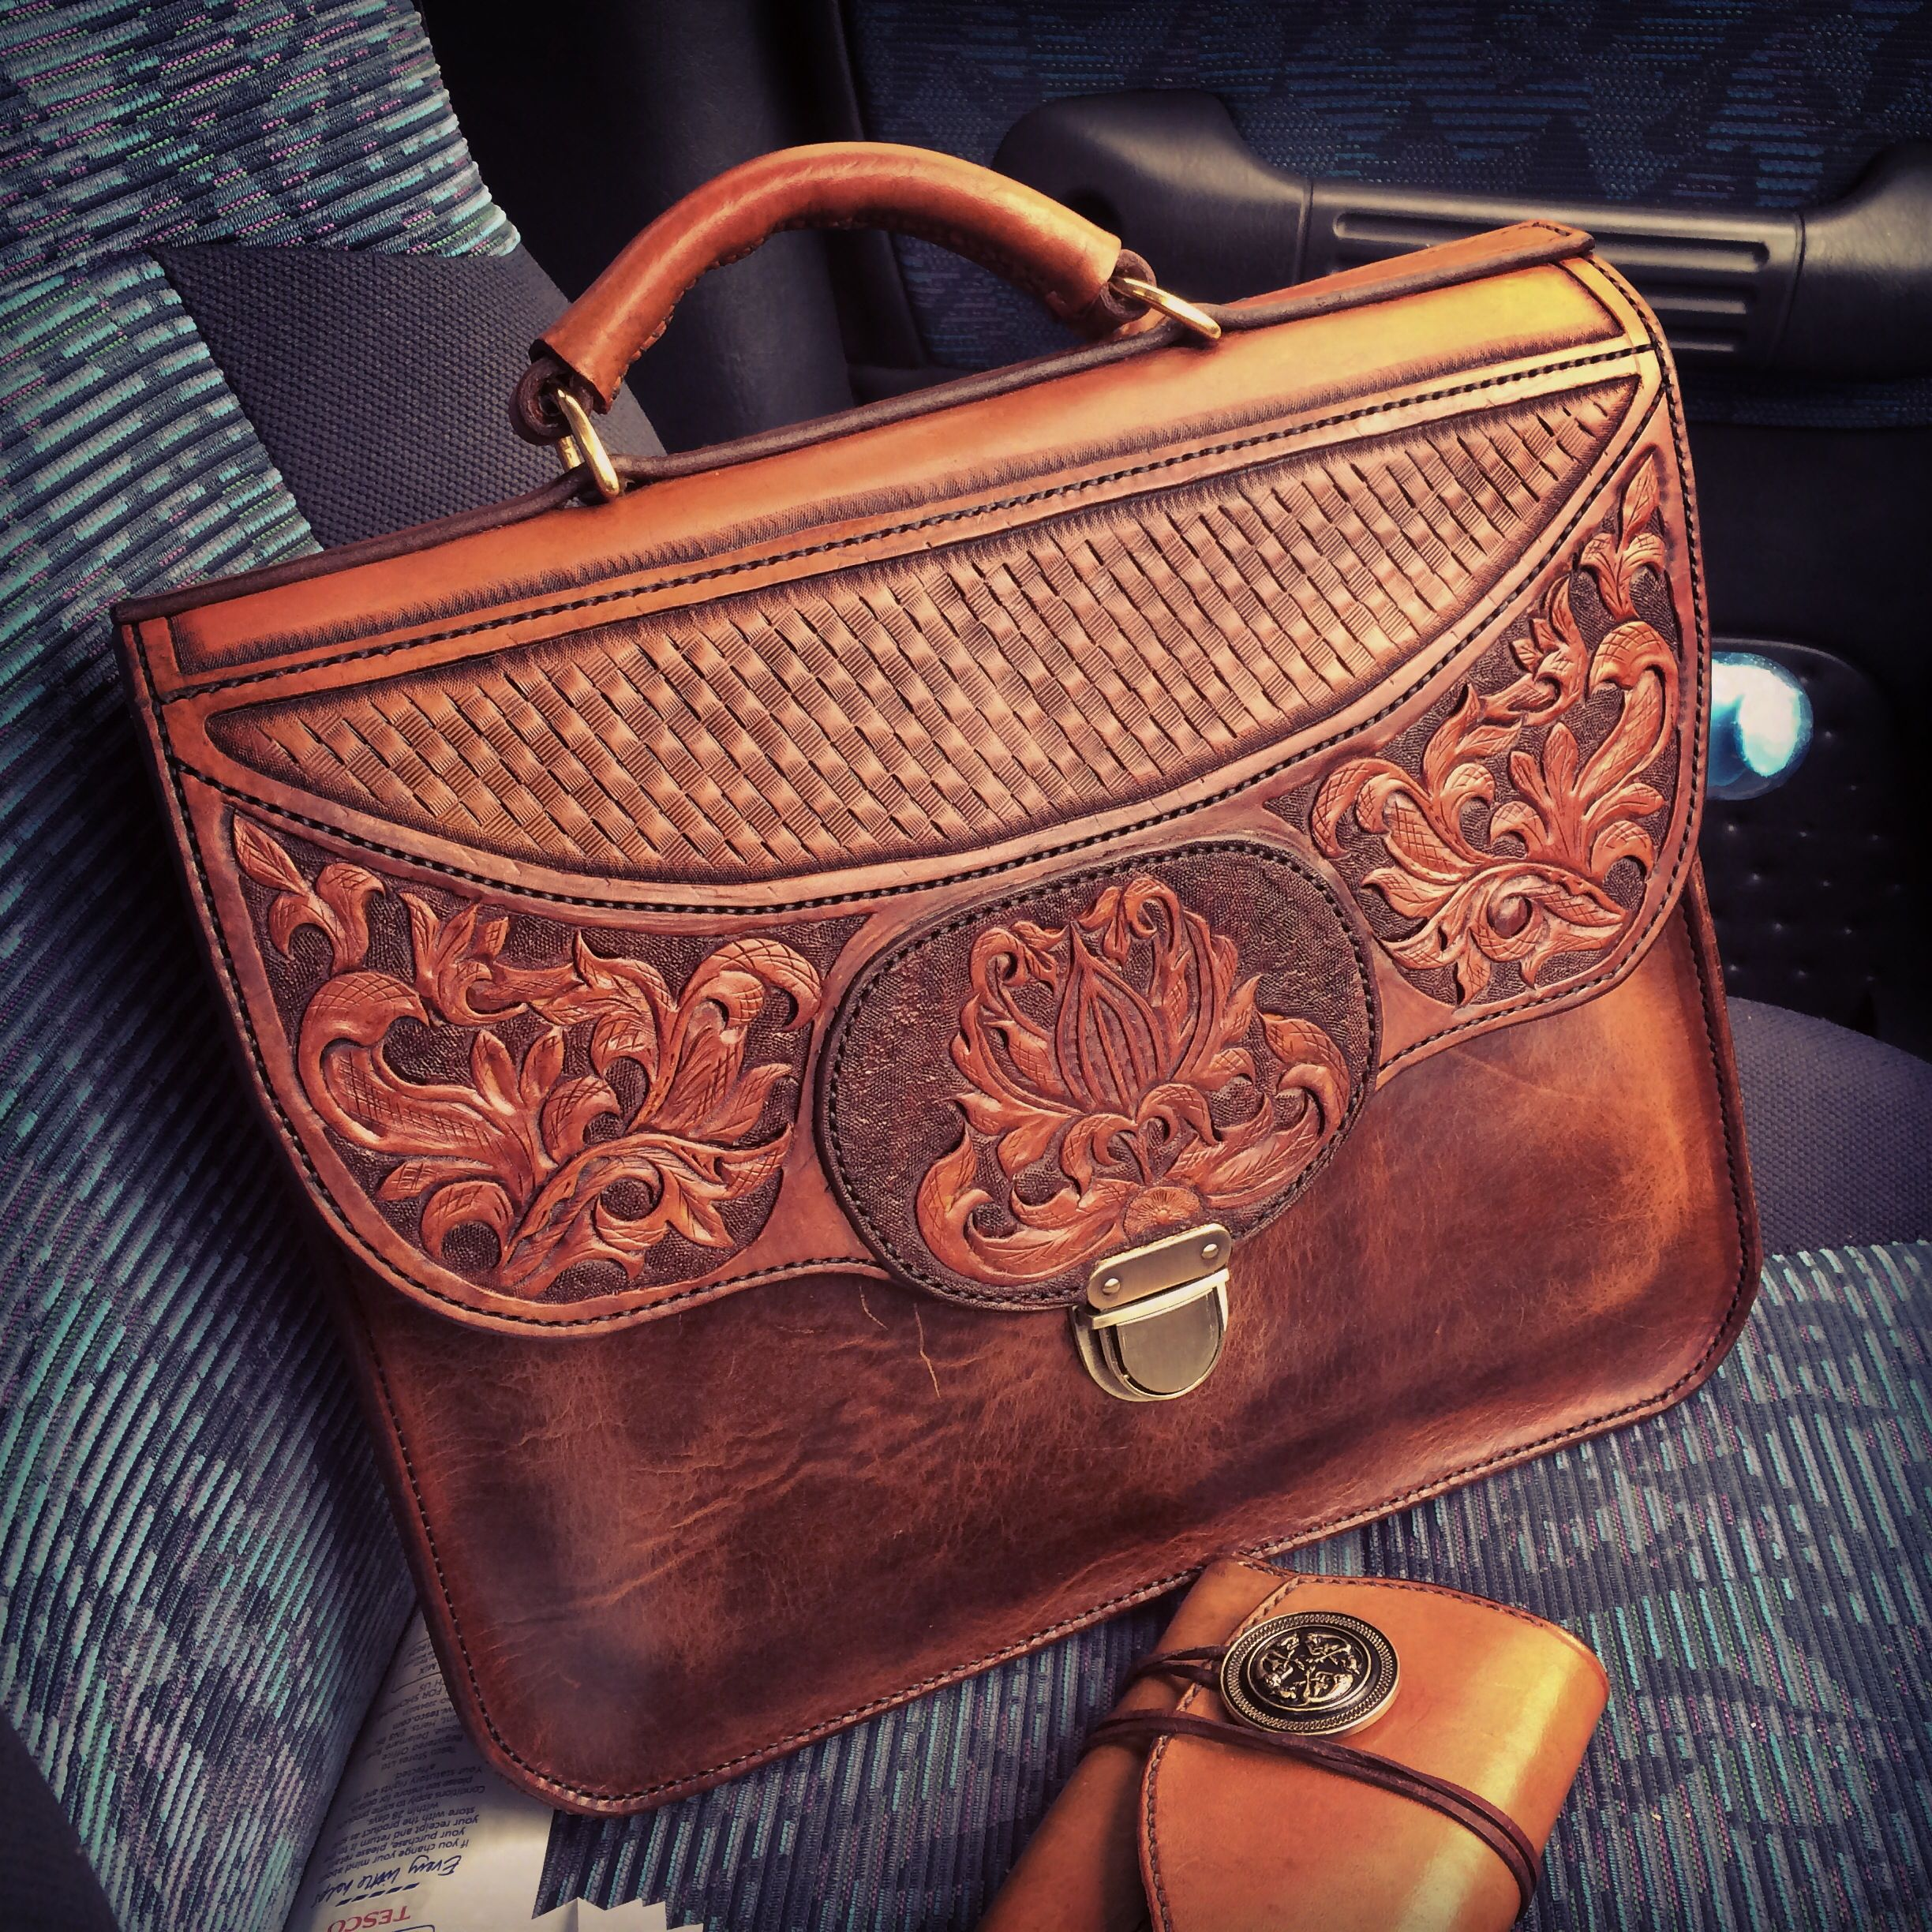 7a2f2bdb0 Fully Tooled Soft-Sided Briefcase/Laptop Bag w/Basket Stamp & Sheridan Style  Flap Design Image